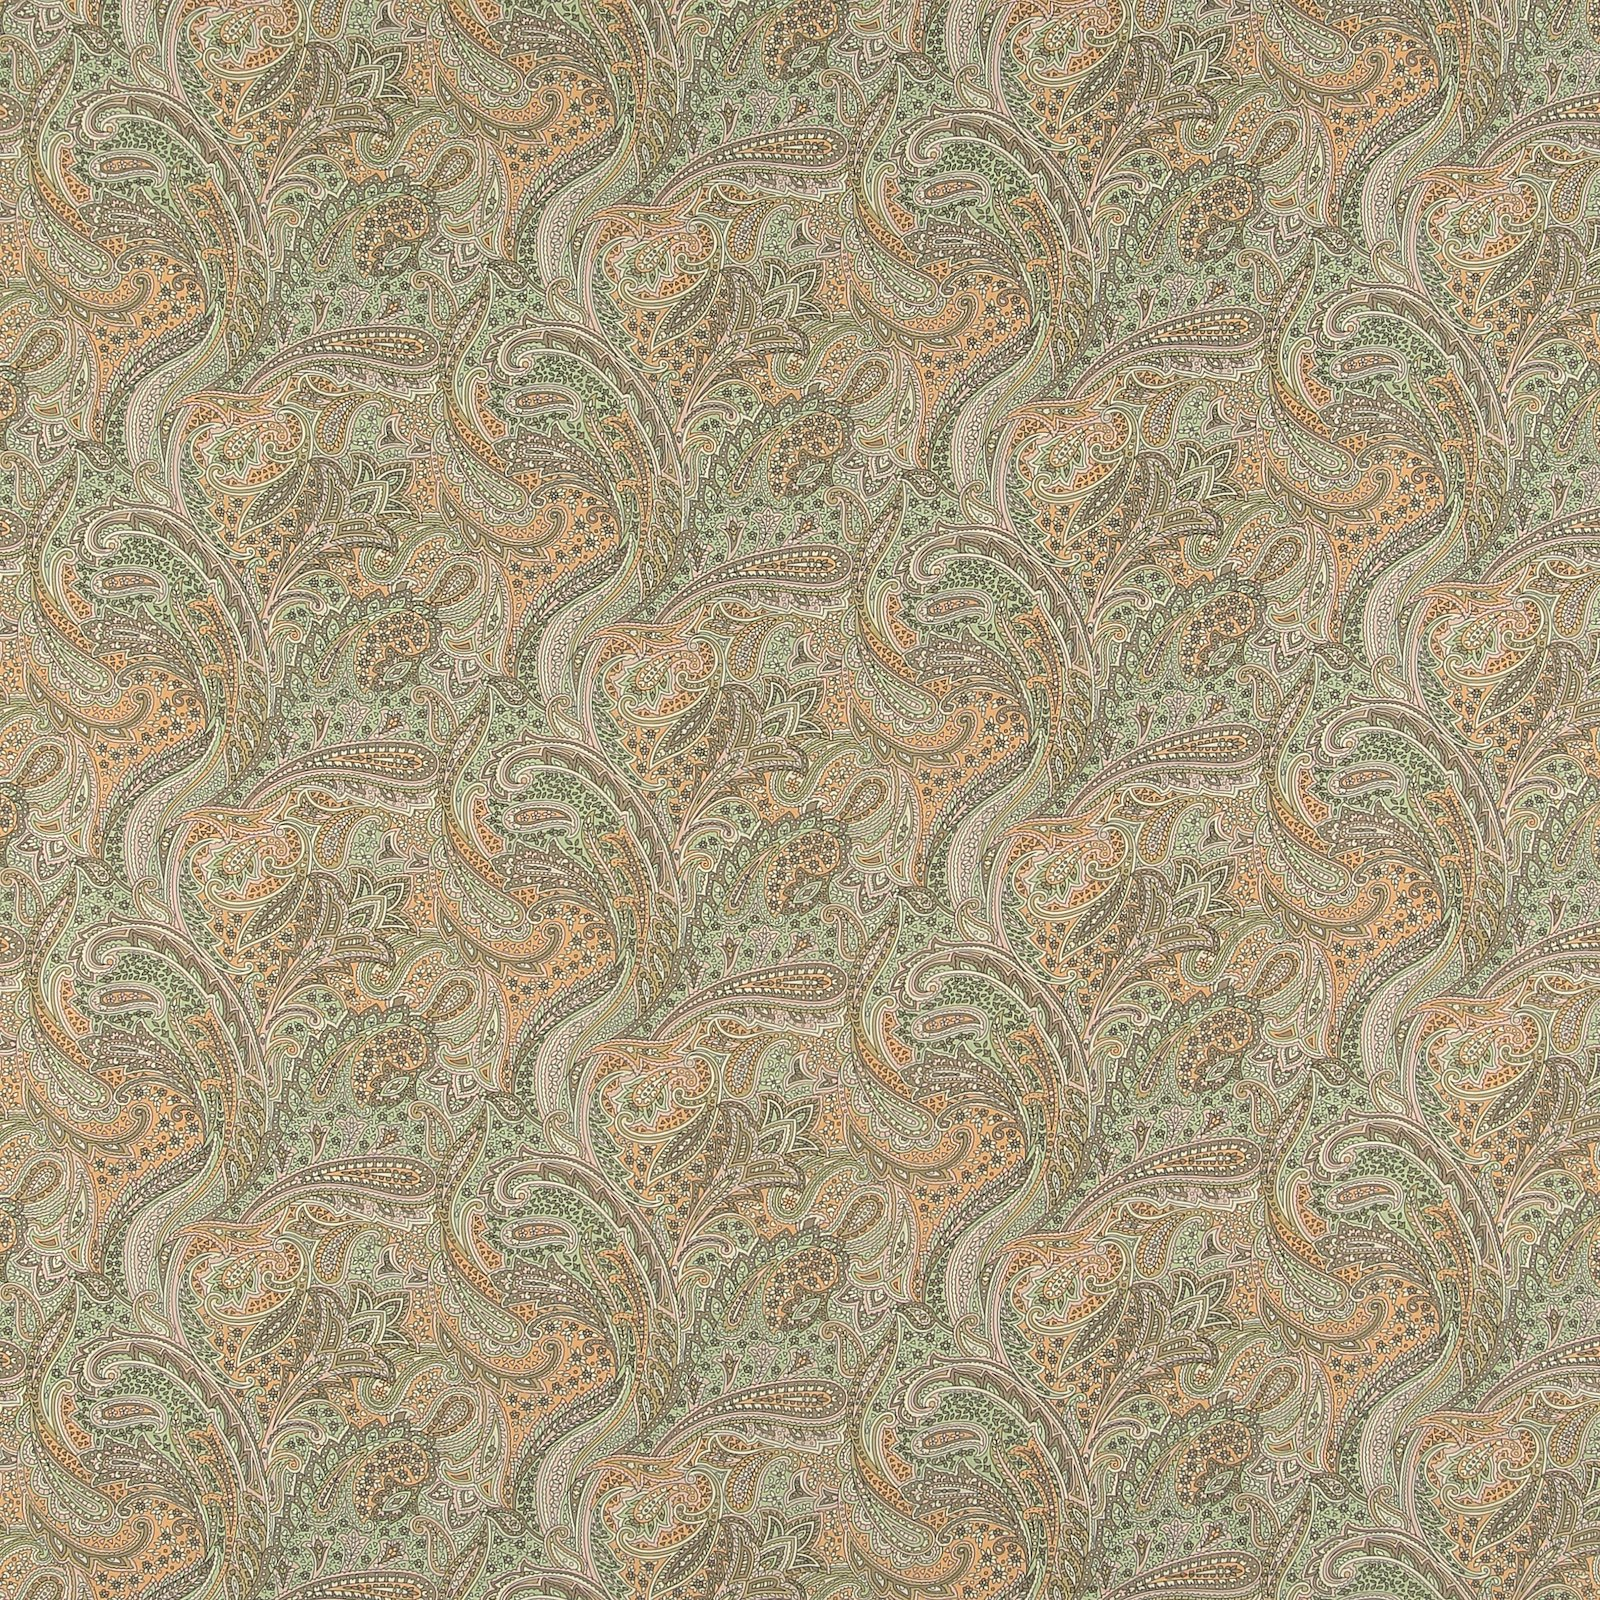 Cotton poplin sand with paisley print 540116_pack_sp